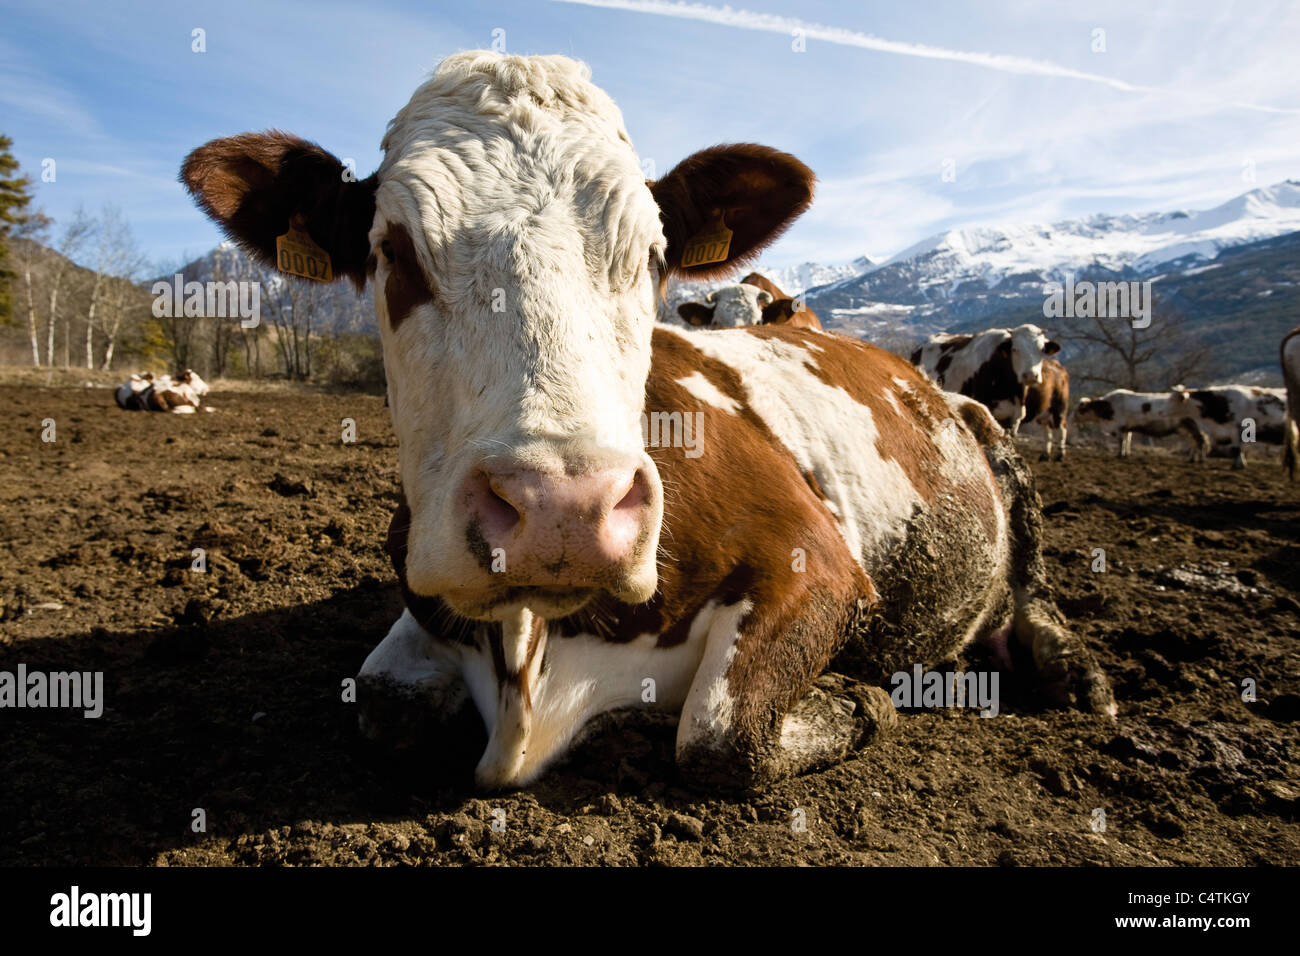 Cow lying down, mountains in background - Stock Image